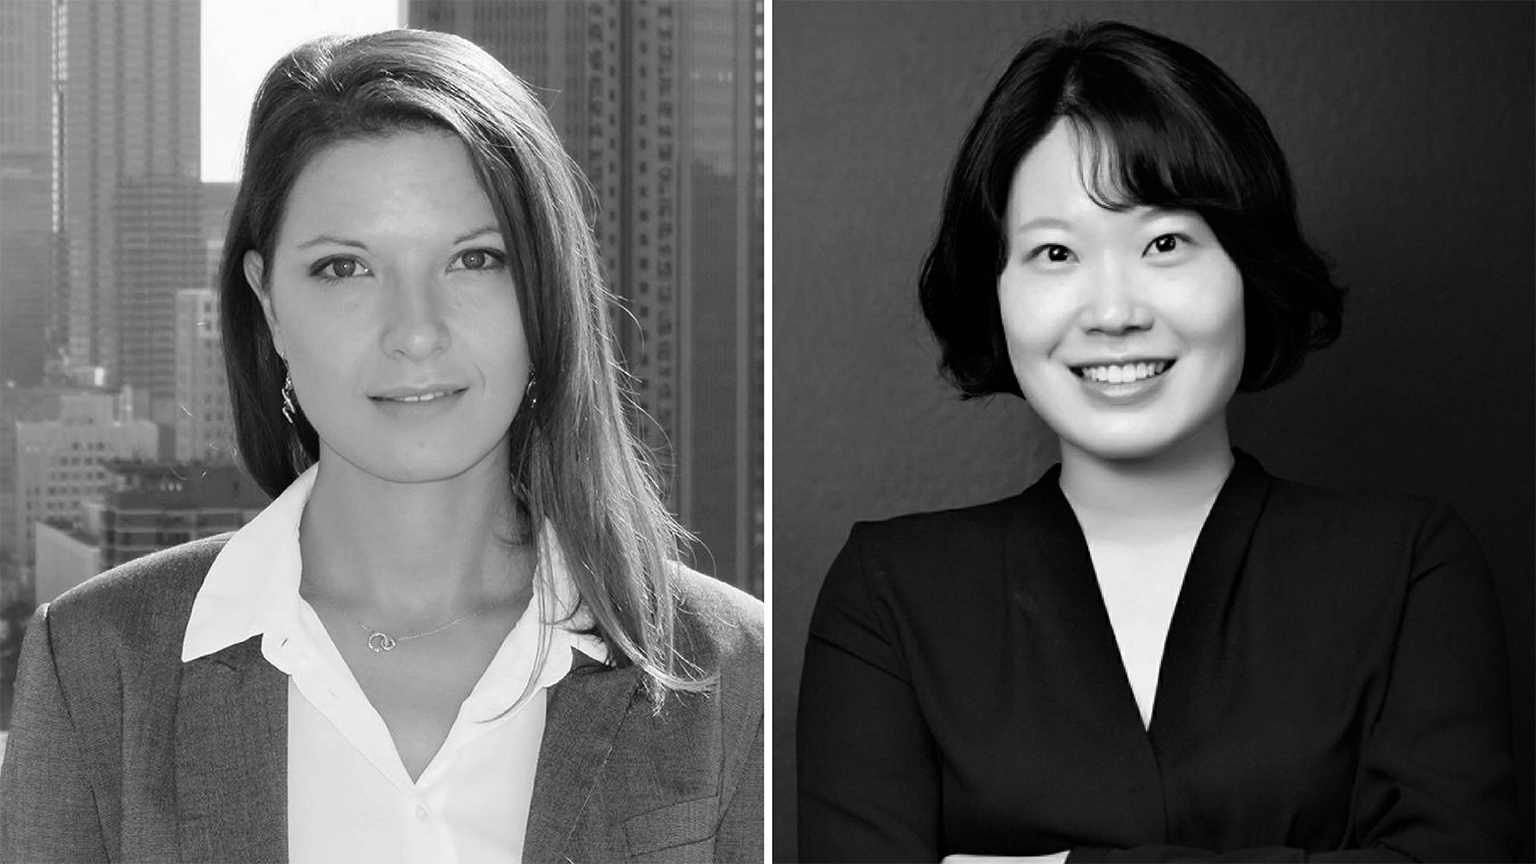 Zorana Matić-Isautier and Lisa Lim's headshots side by side in black and white